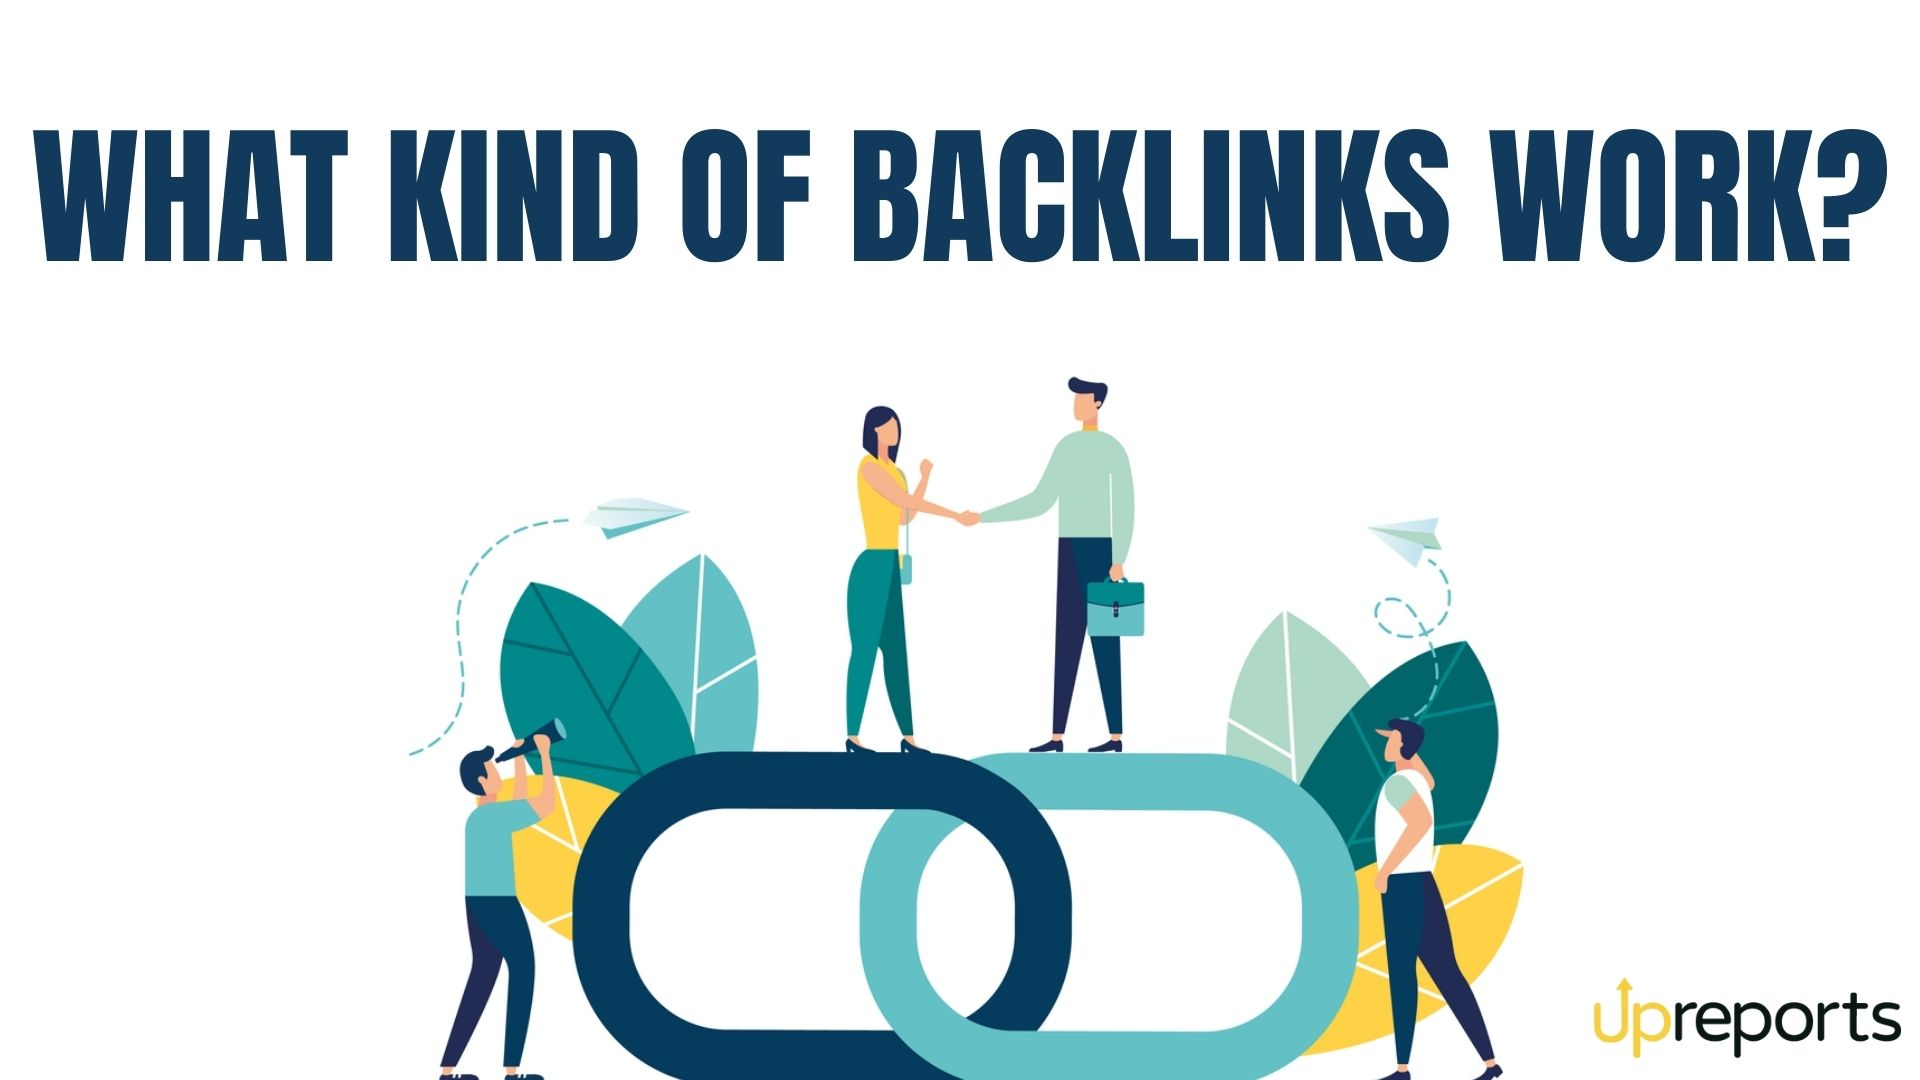 High or low authority: What kind of backlinks actually work?